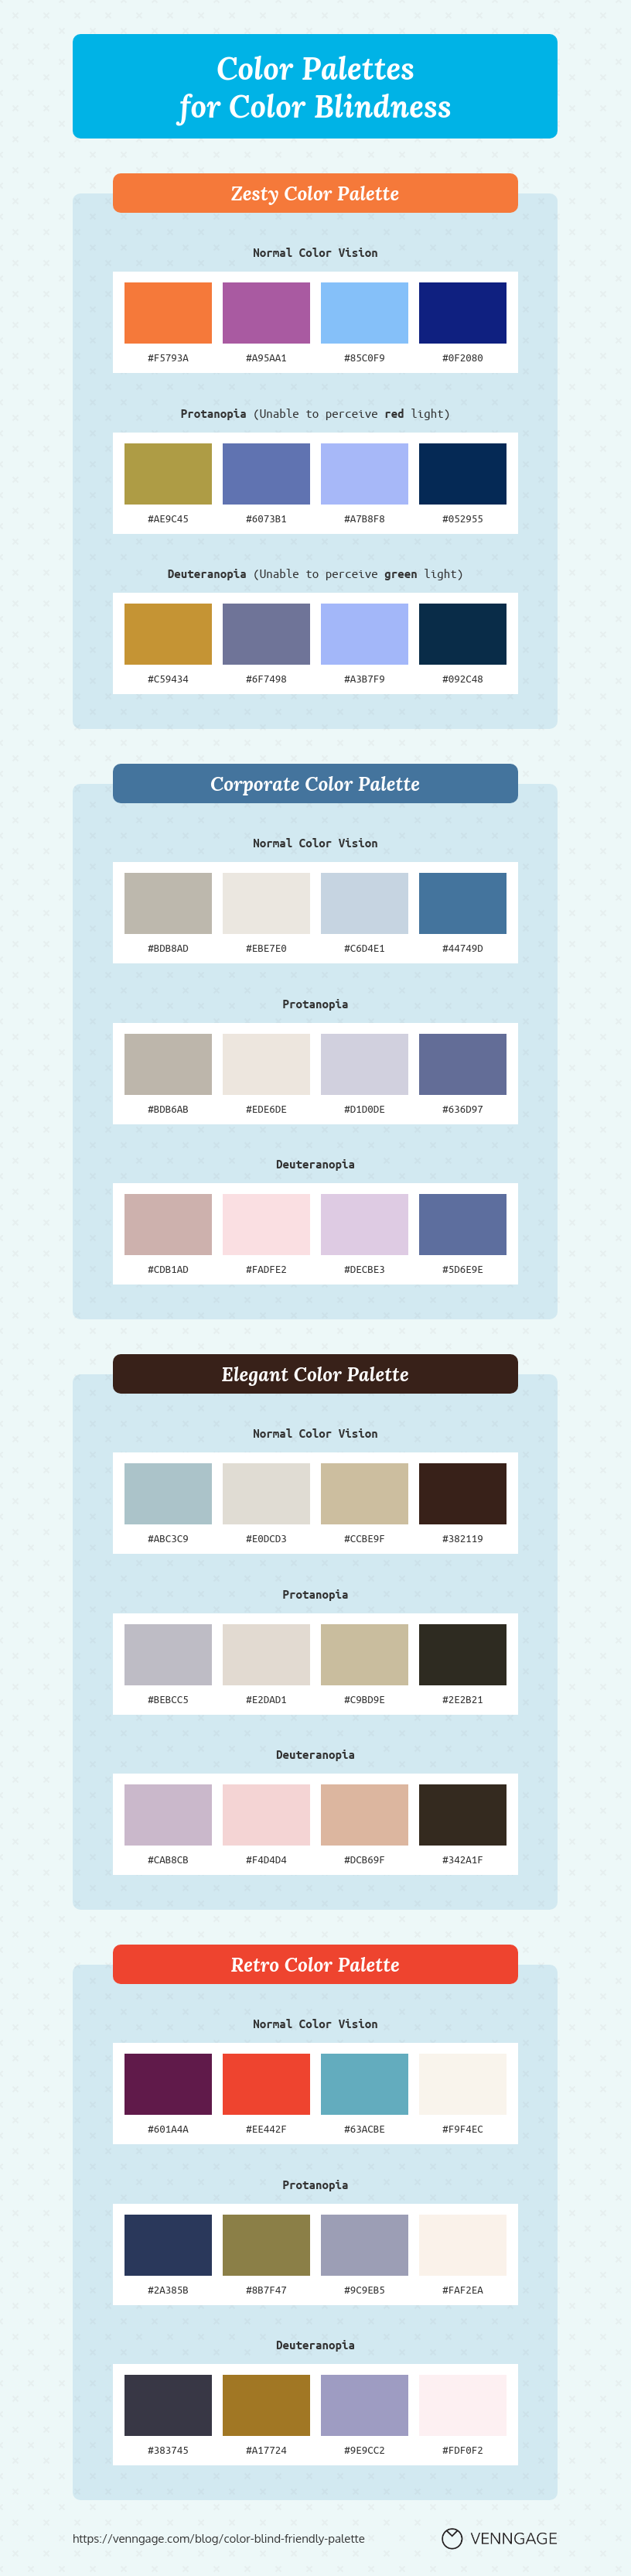 Color Palettes for Color Blindness Infographic